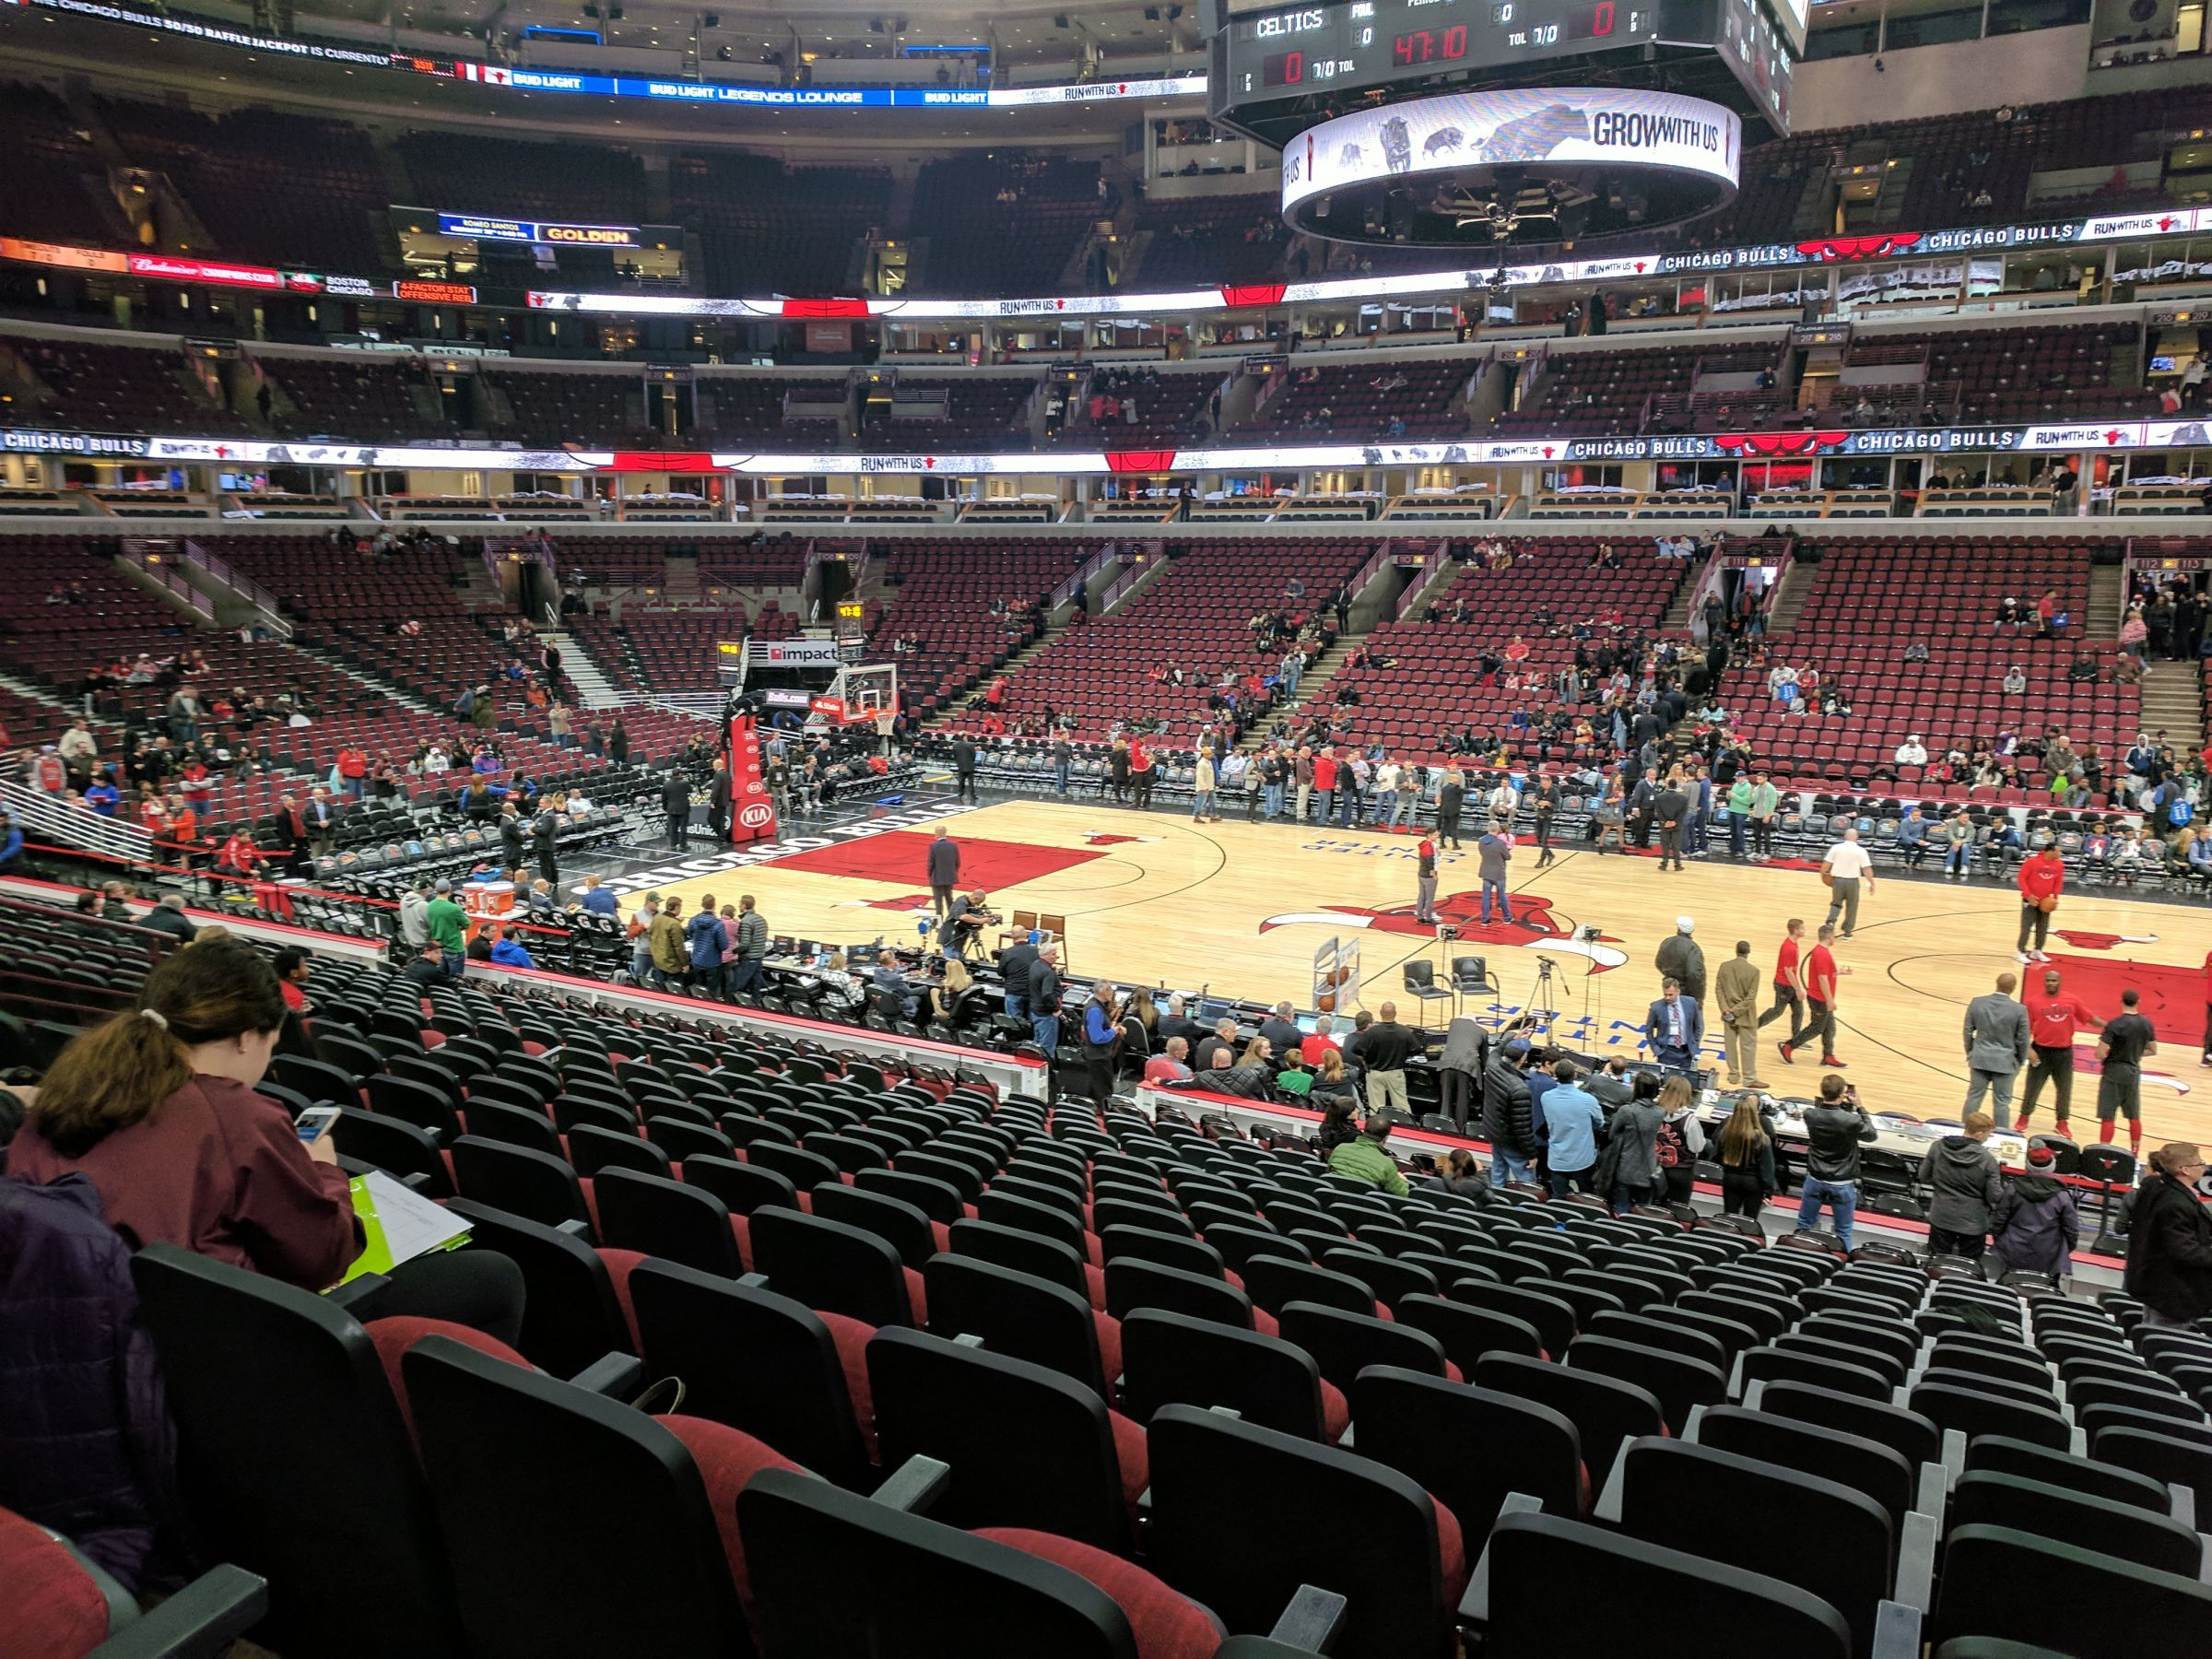 Chicago Bulls Seat View for United Center Section 122, Row 18, Seat 1